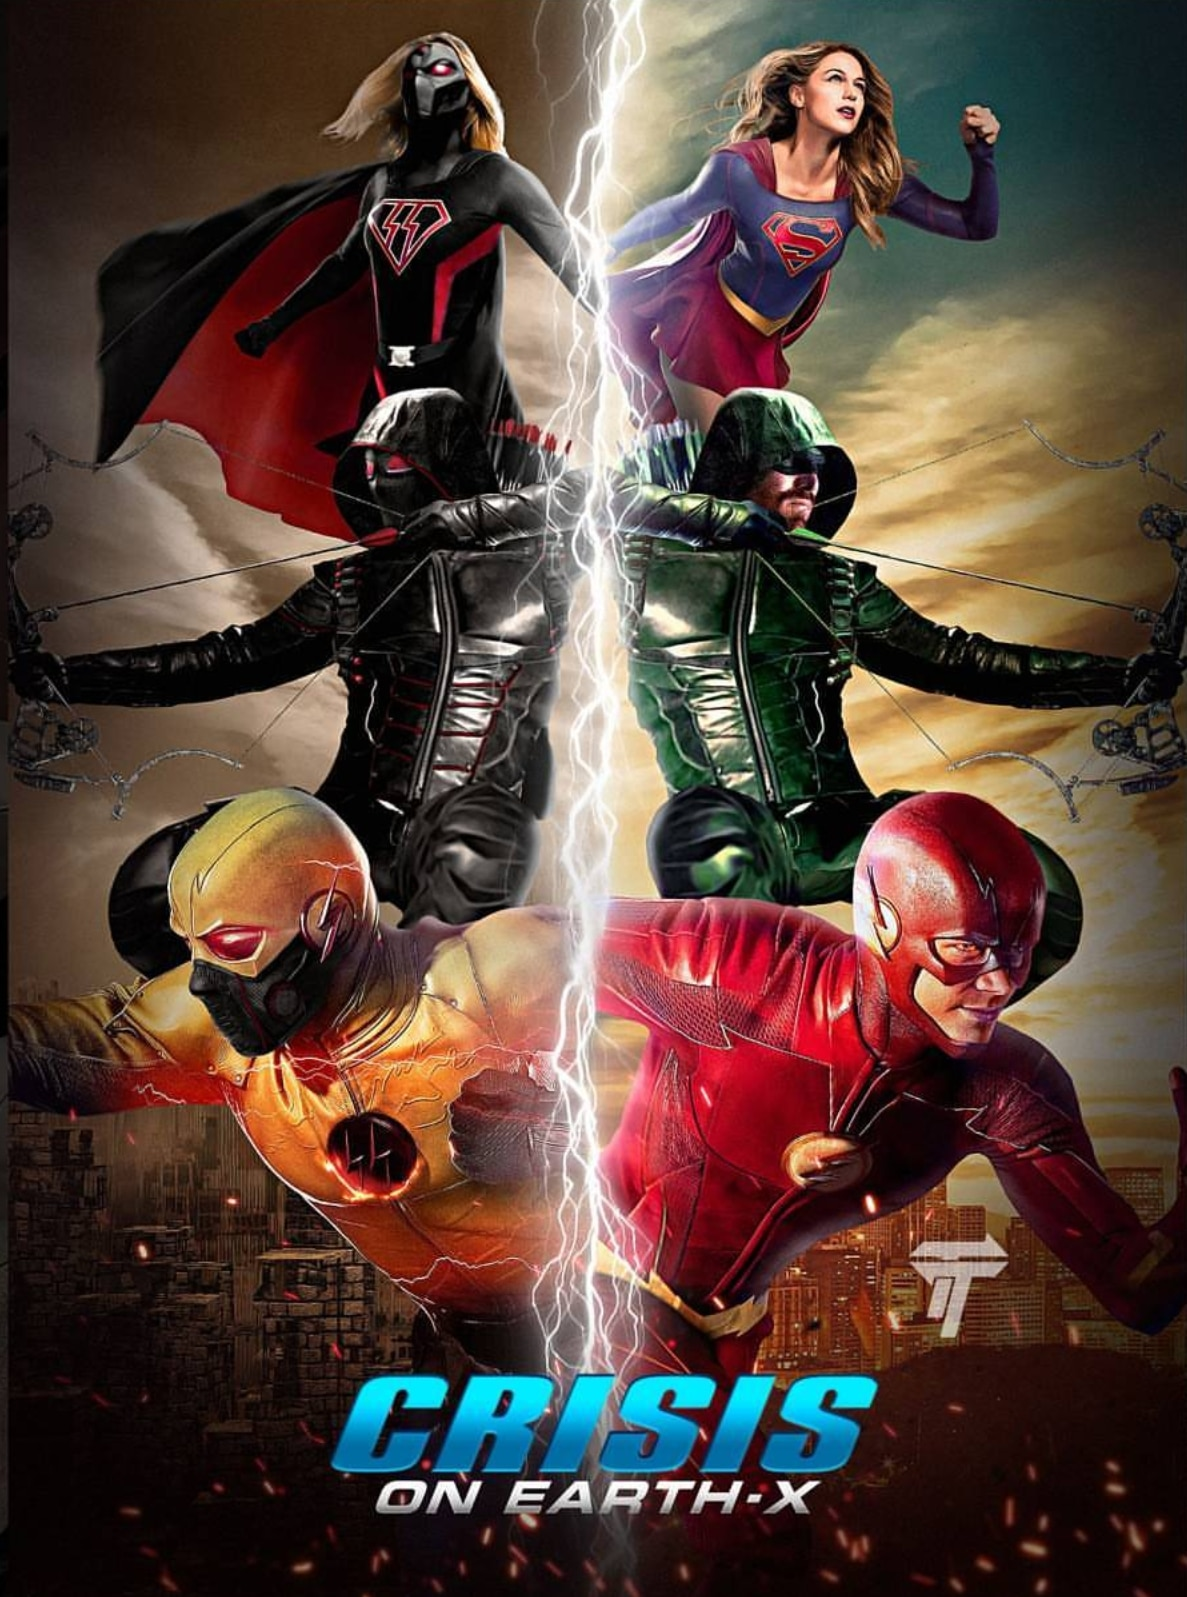 The Flash season 4 crossover poster